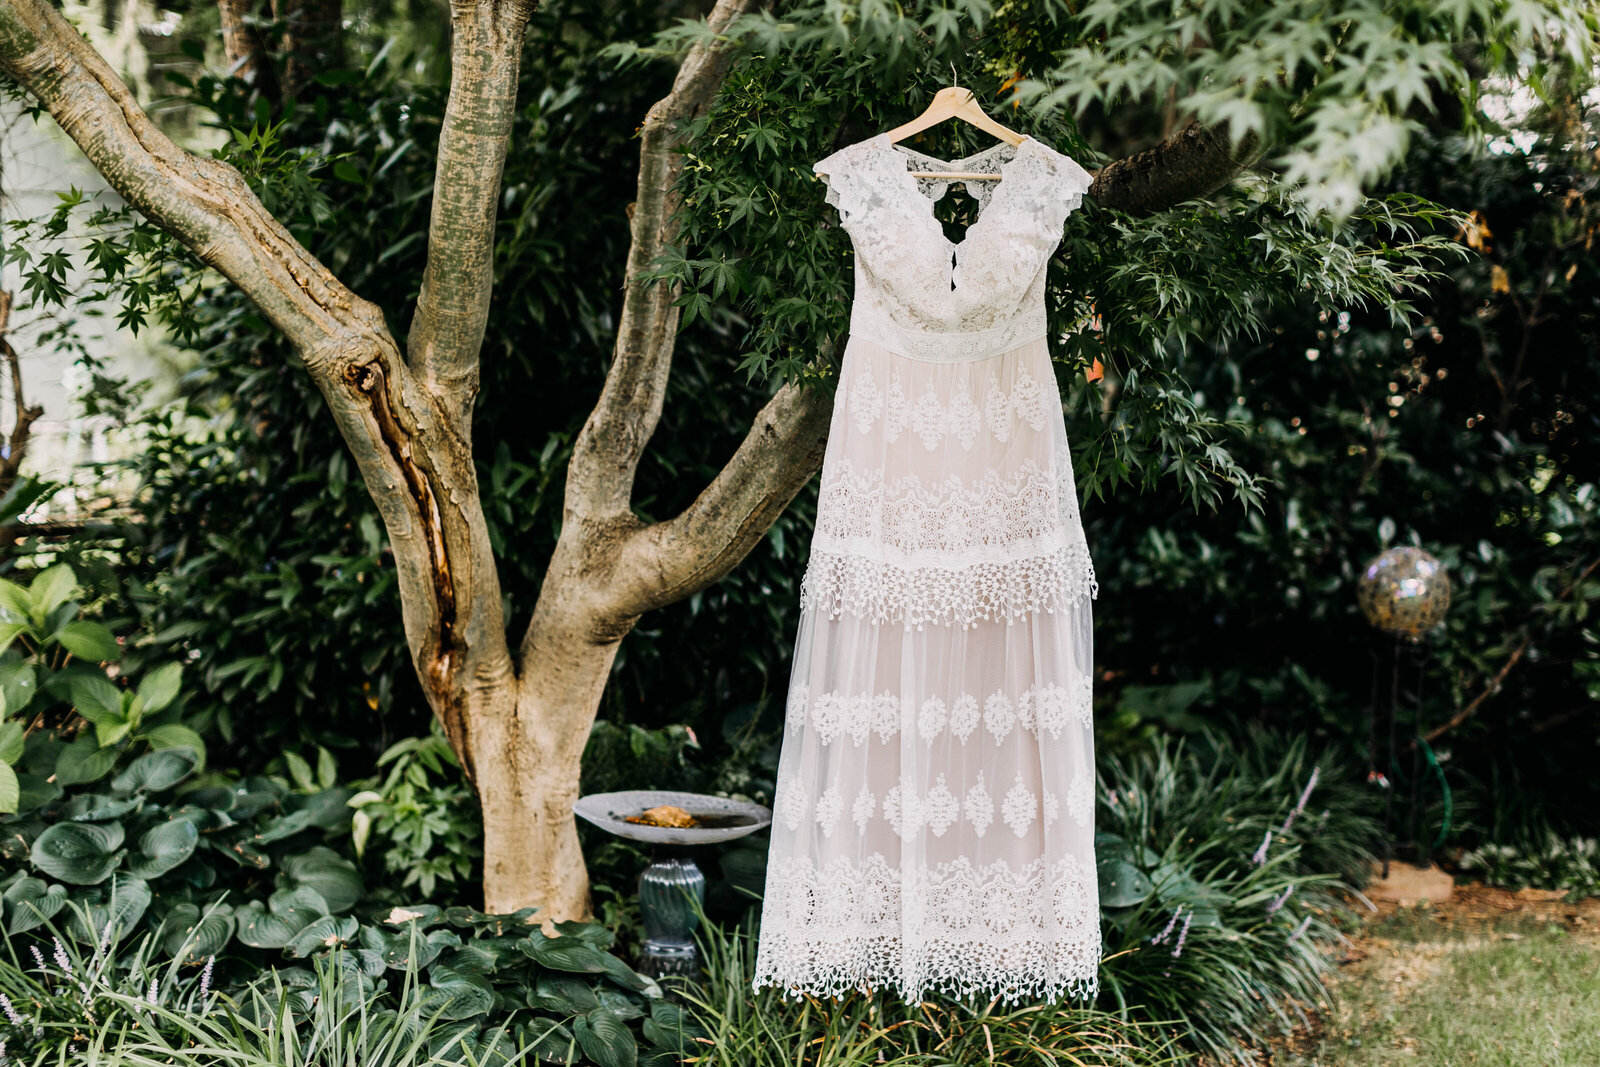 lace wedding dress hanging in tree